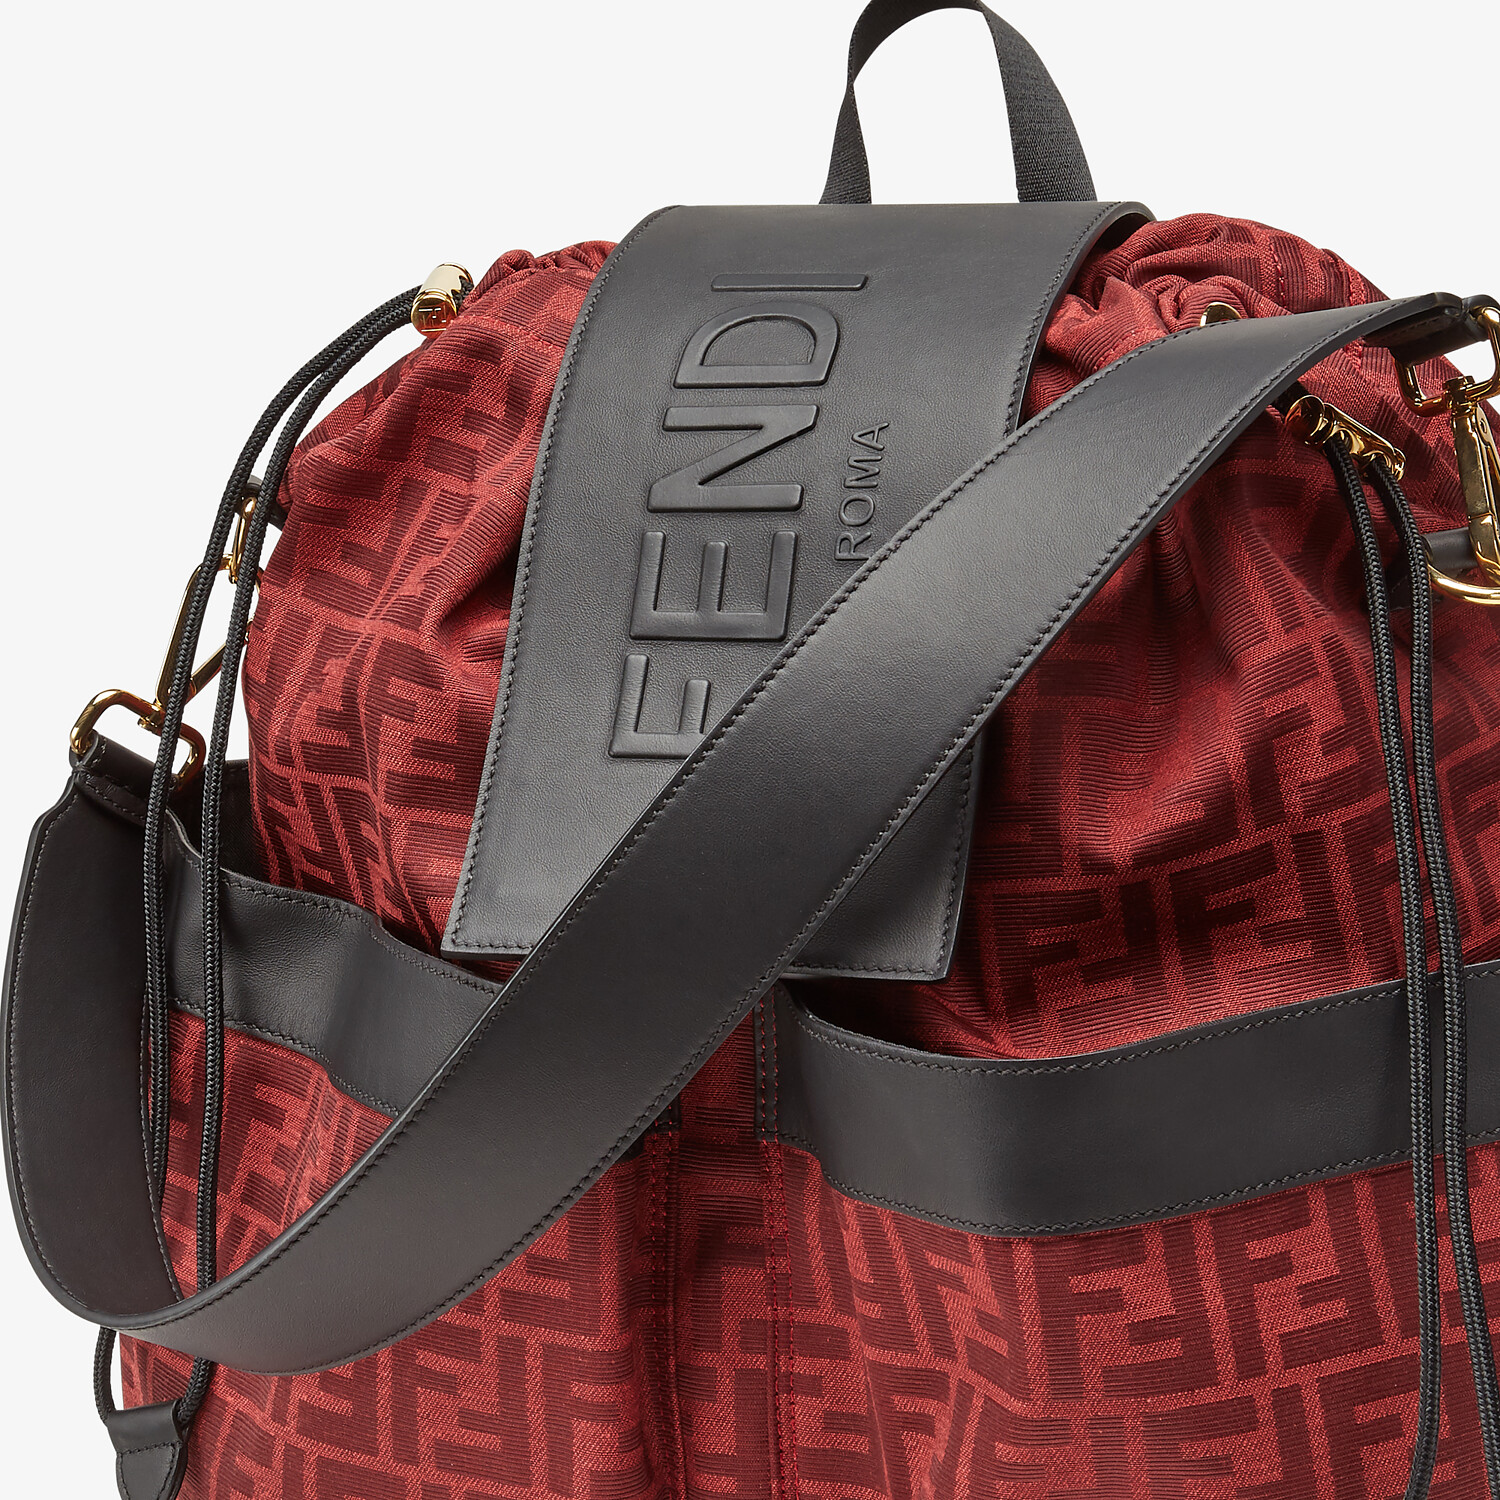 FENDI BACKPACK - Backpack from the Lunar New Year Limited Capsule Collection - view 4 detail